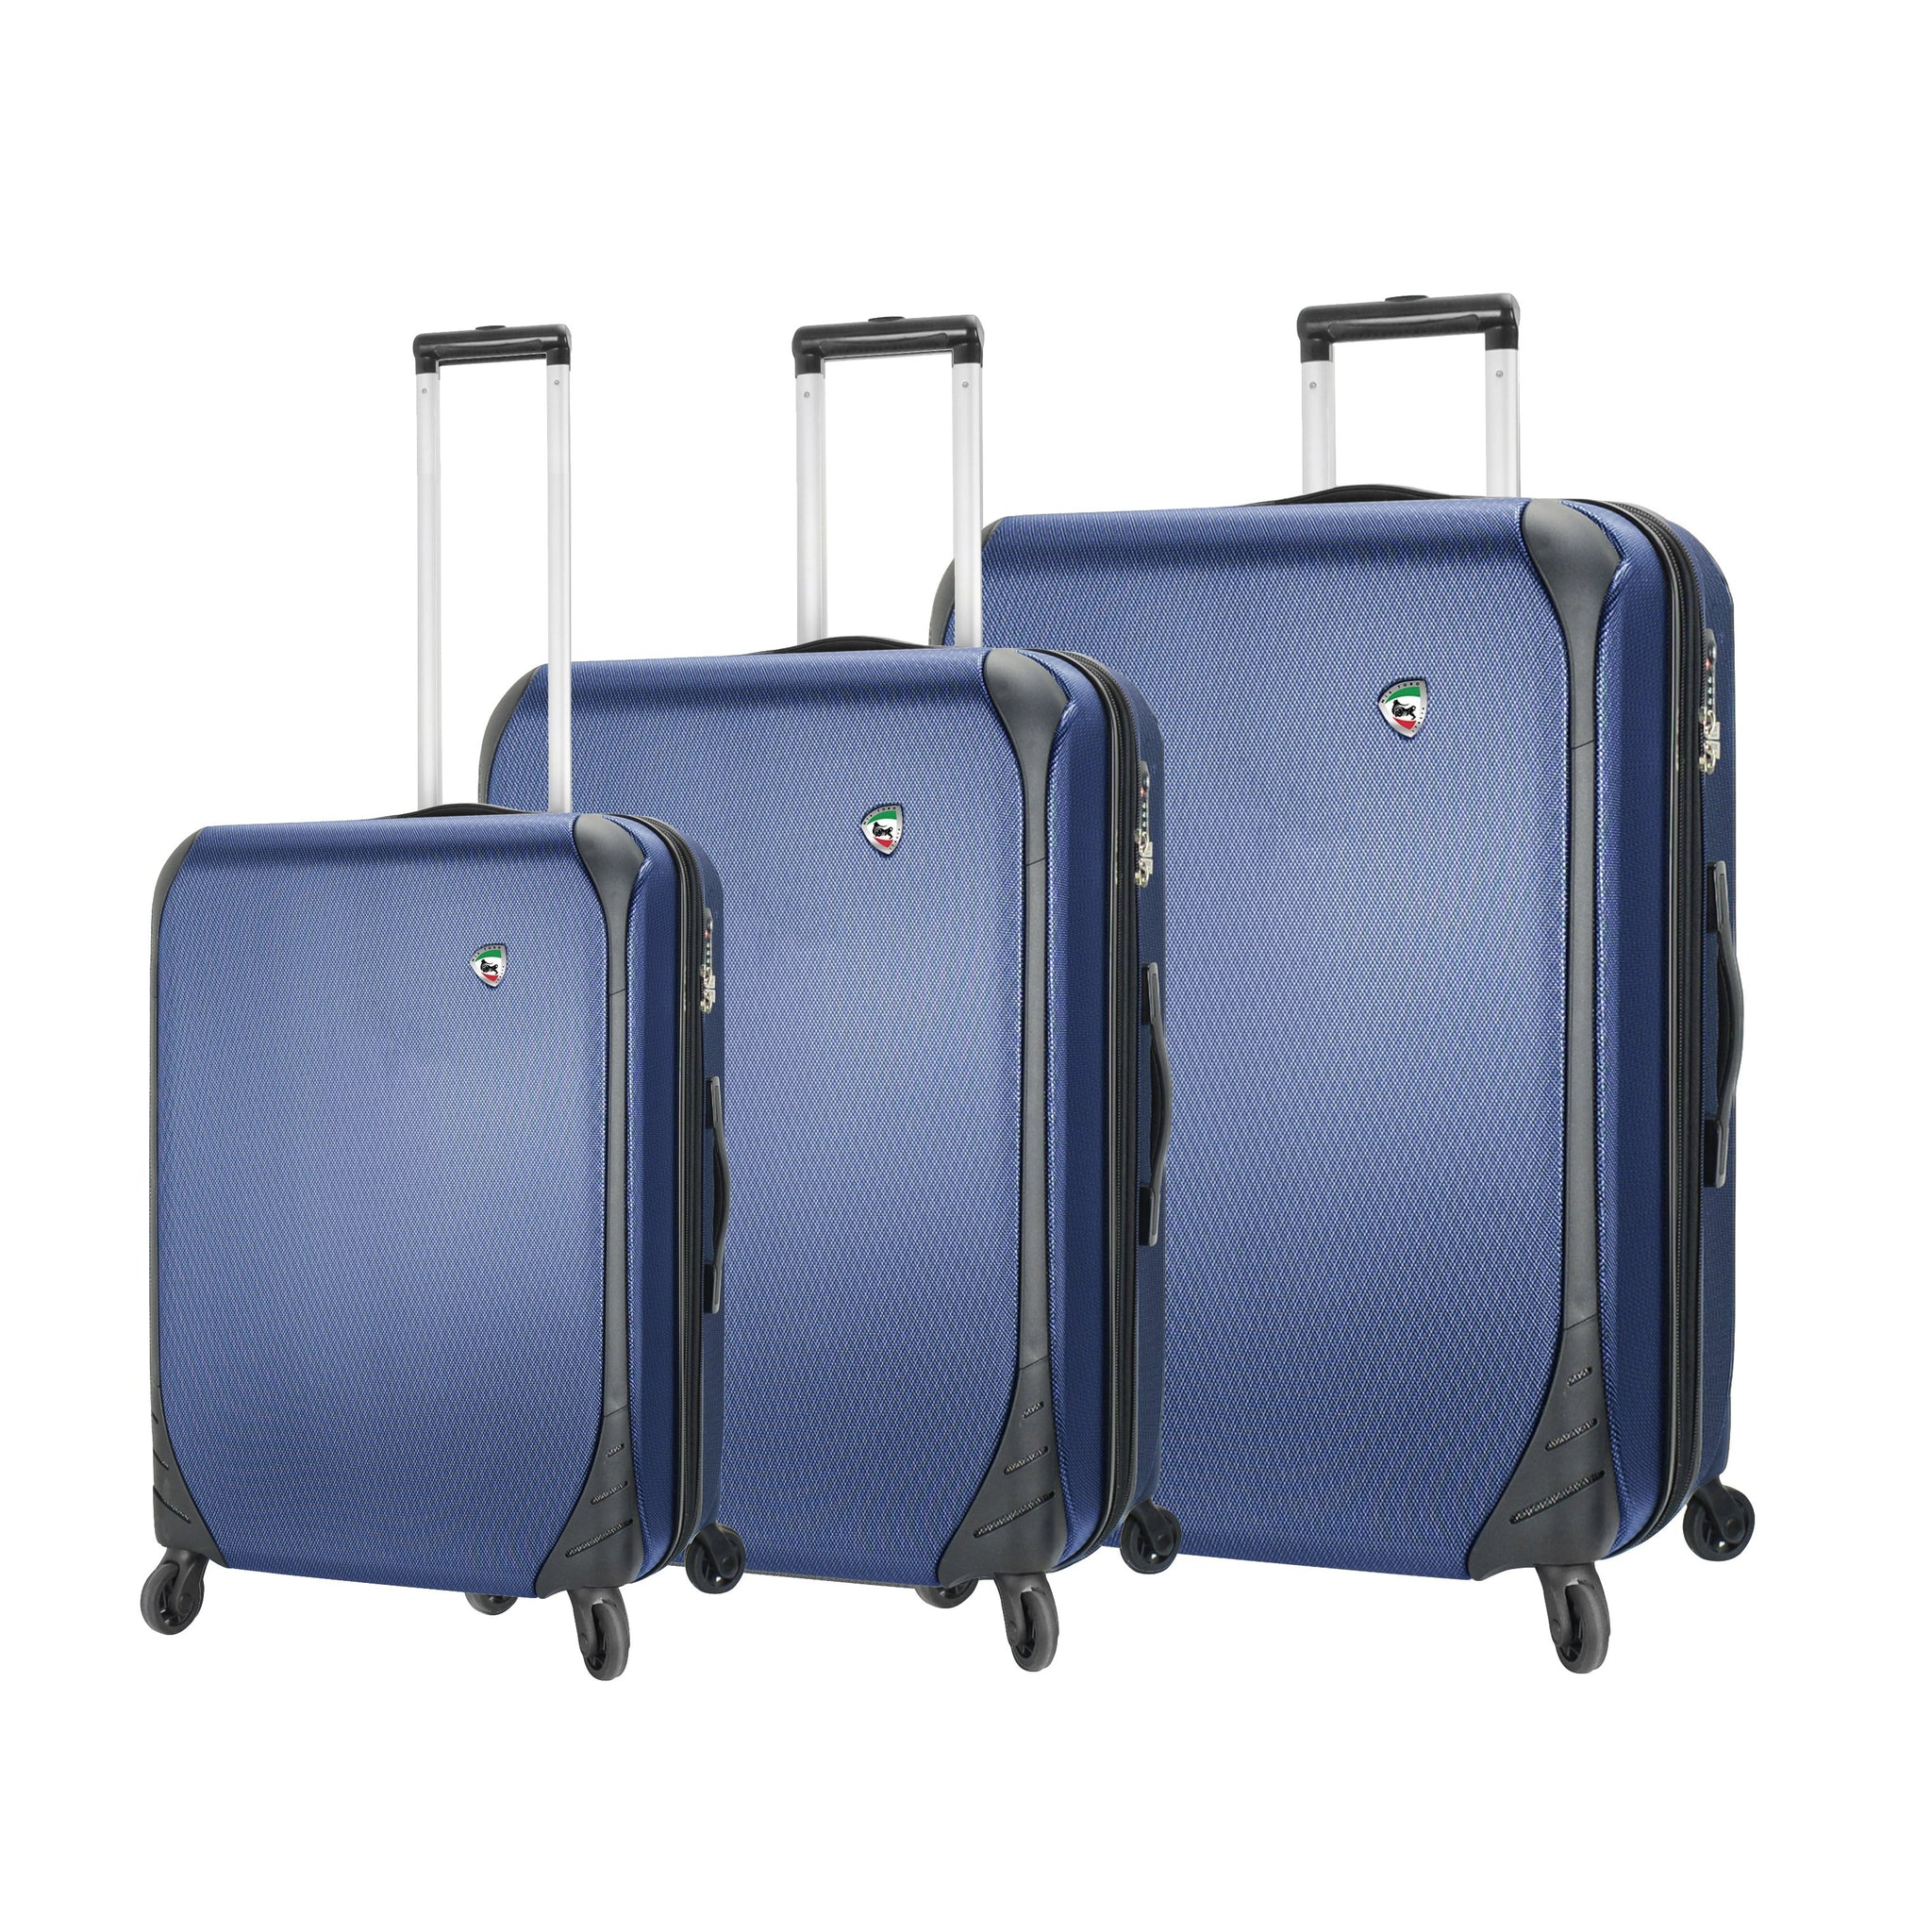 Mia Toro ITALY Aquila Hardside Spinner Luggage 3 Piece set in blue color